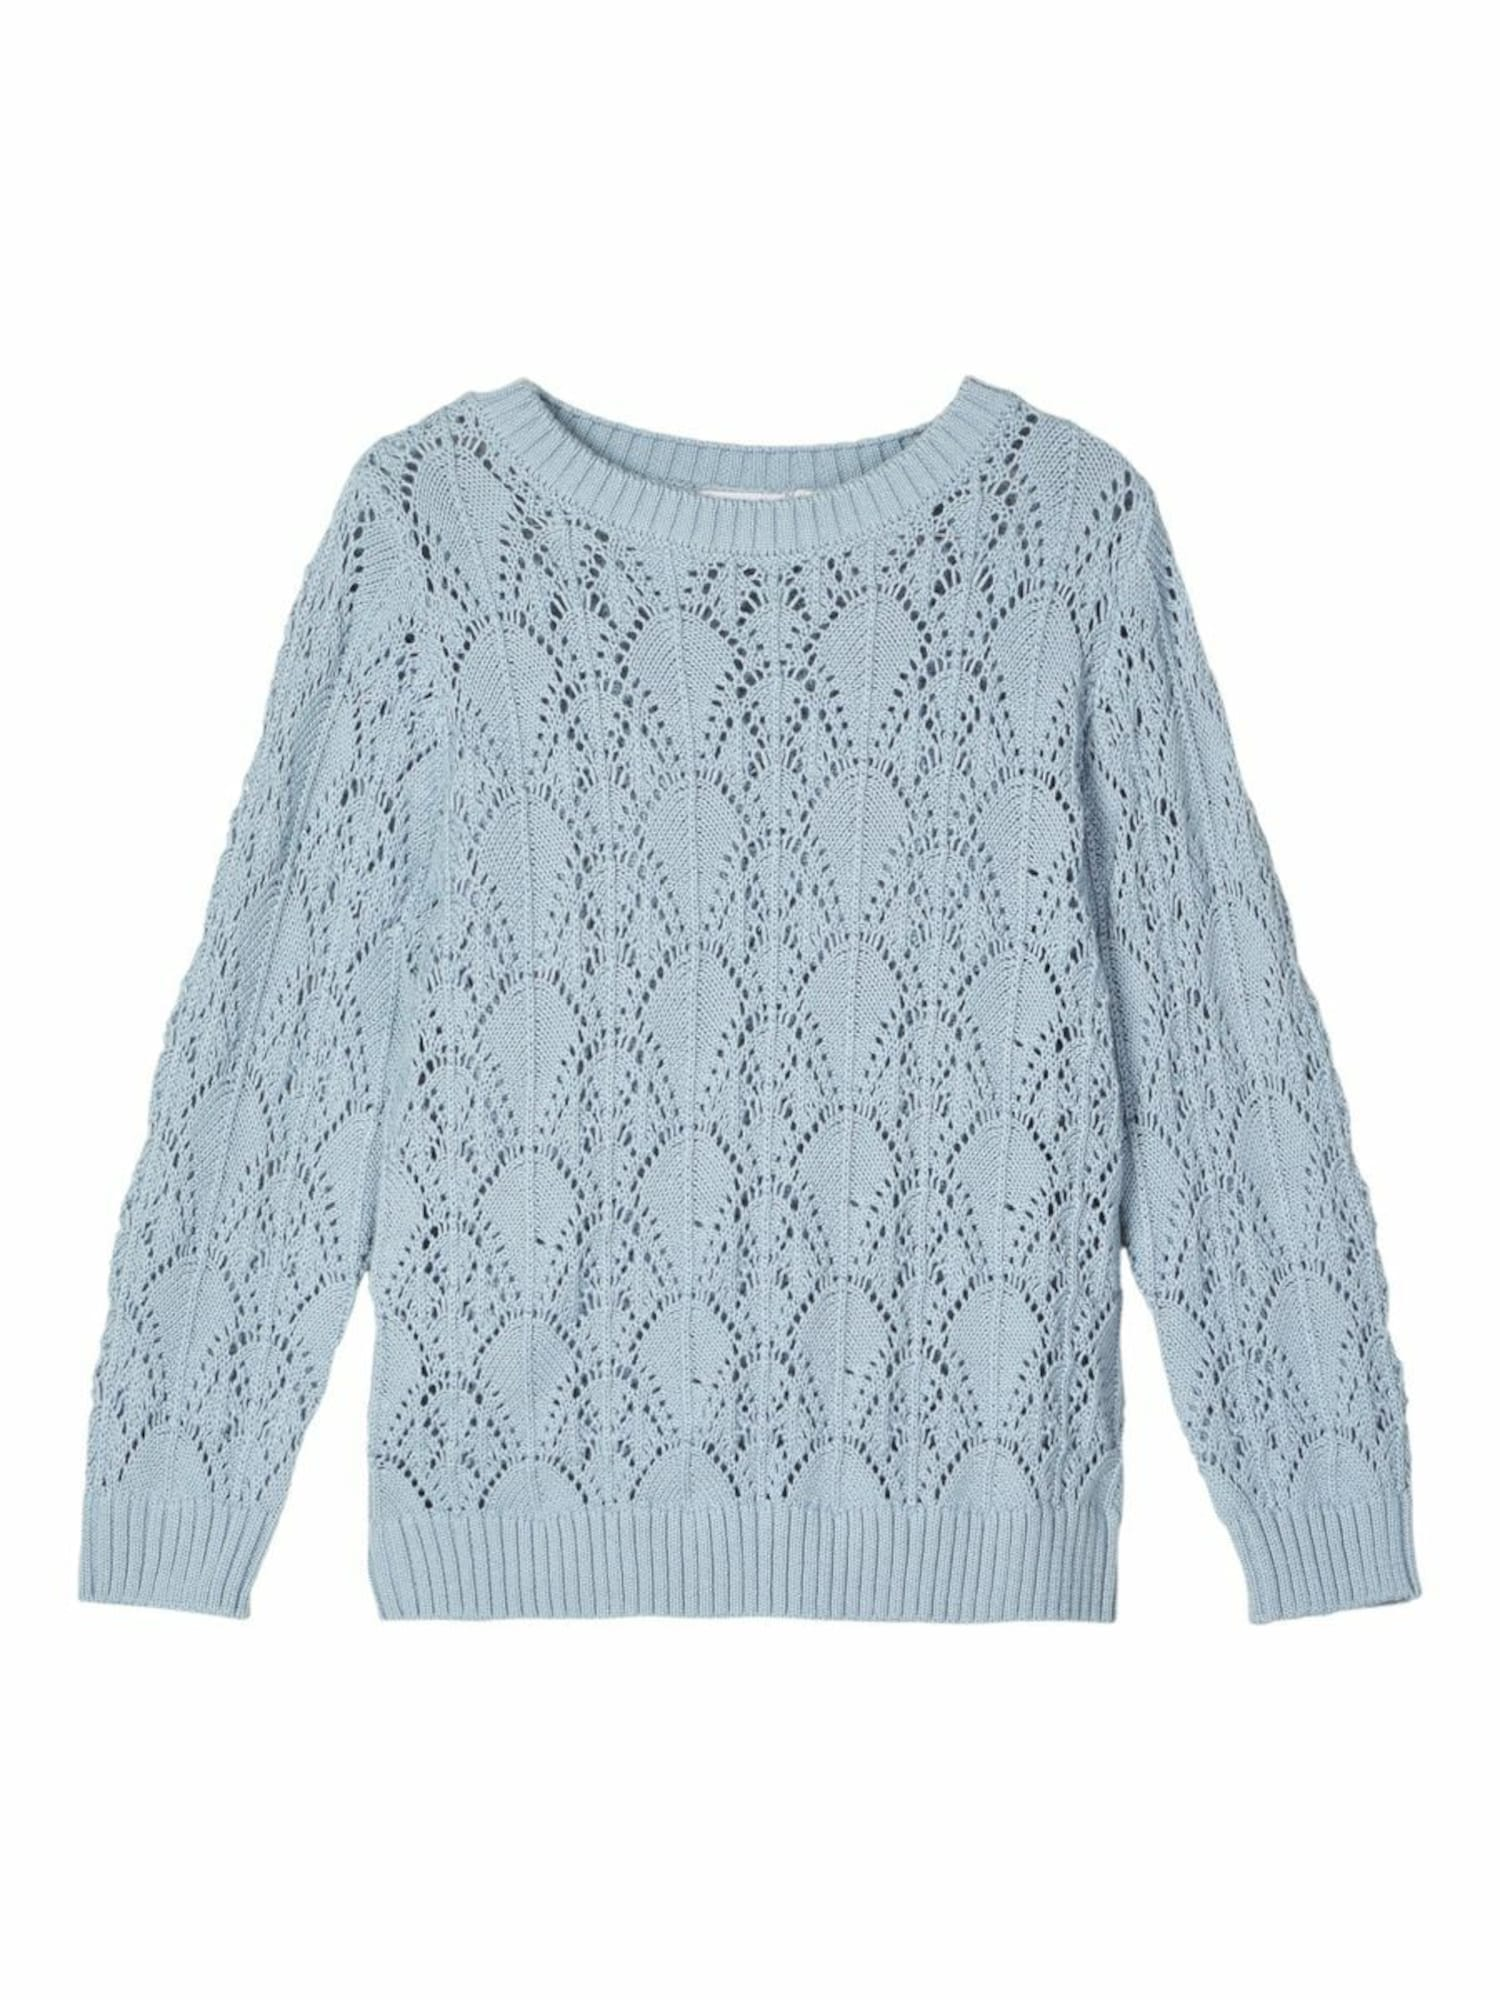 NAME IT Megztinis 'NMFTEMOLLY LS KNIT' mėlyna